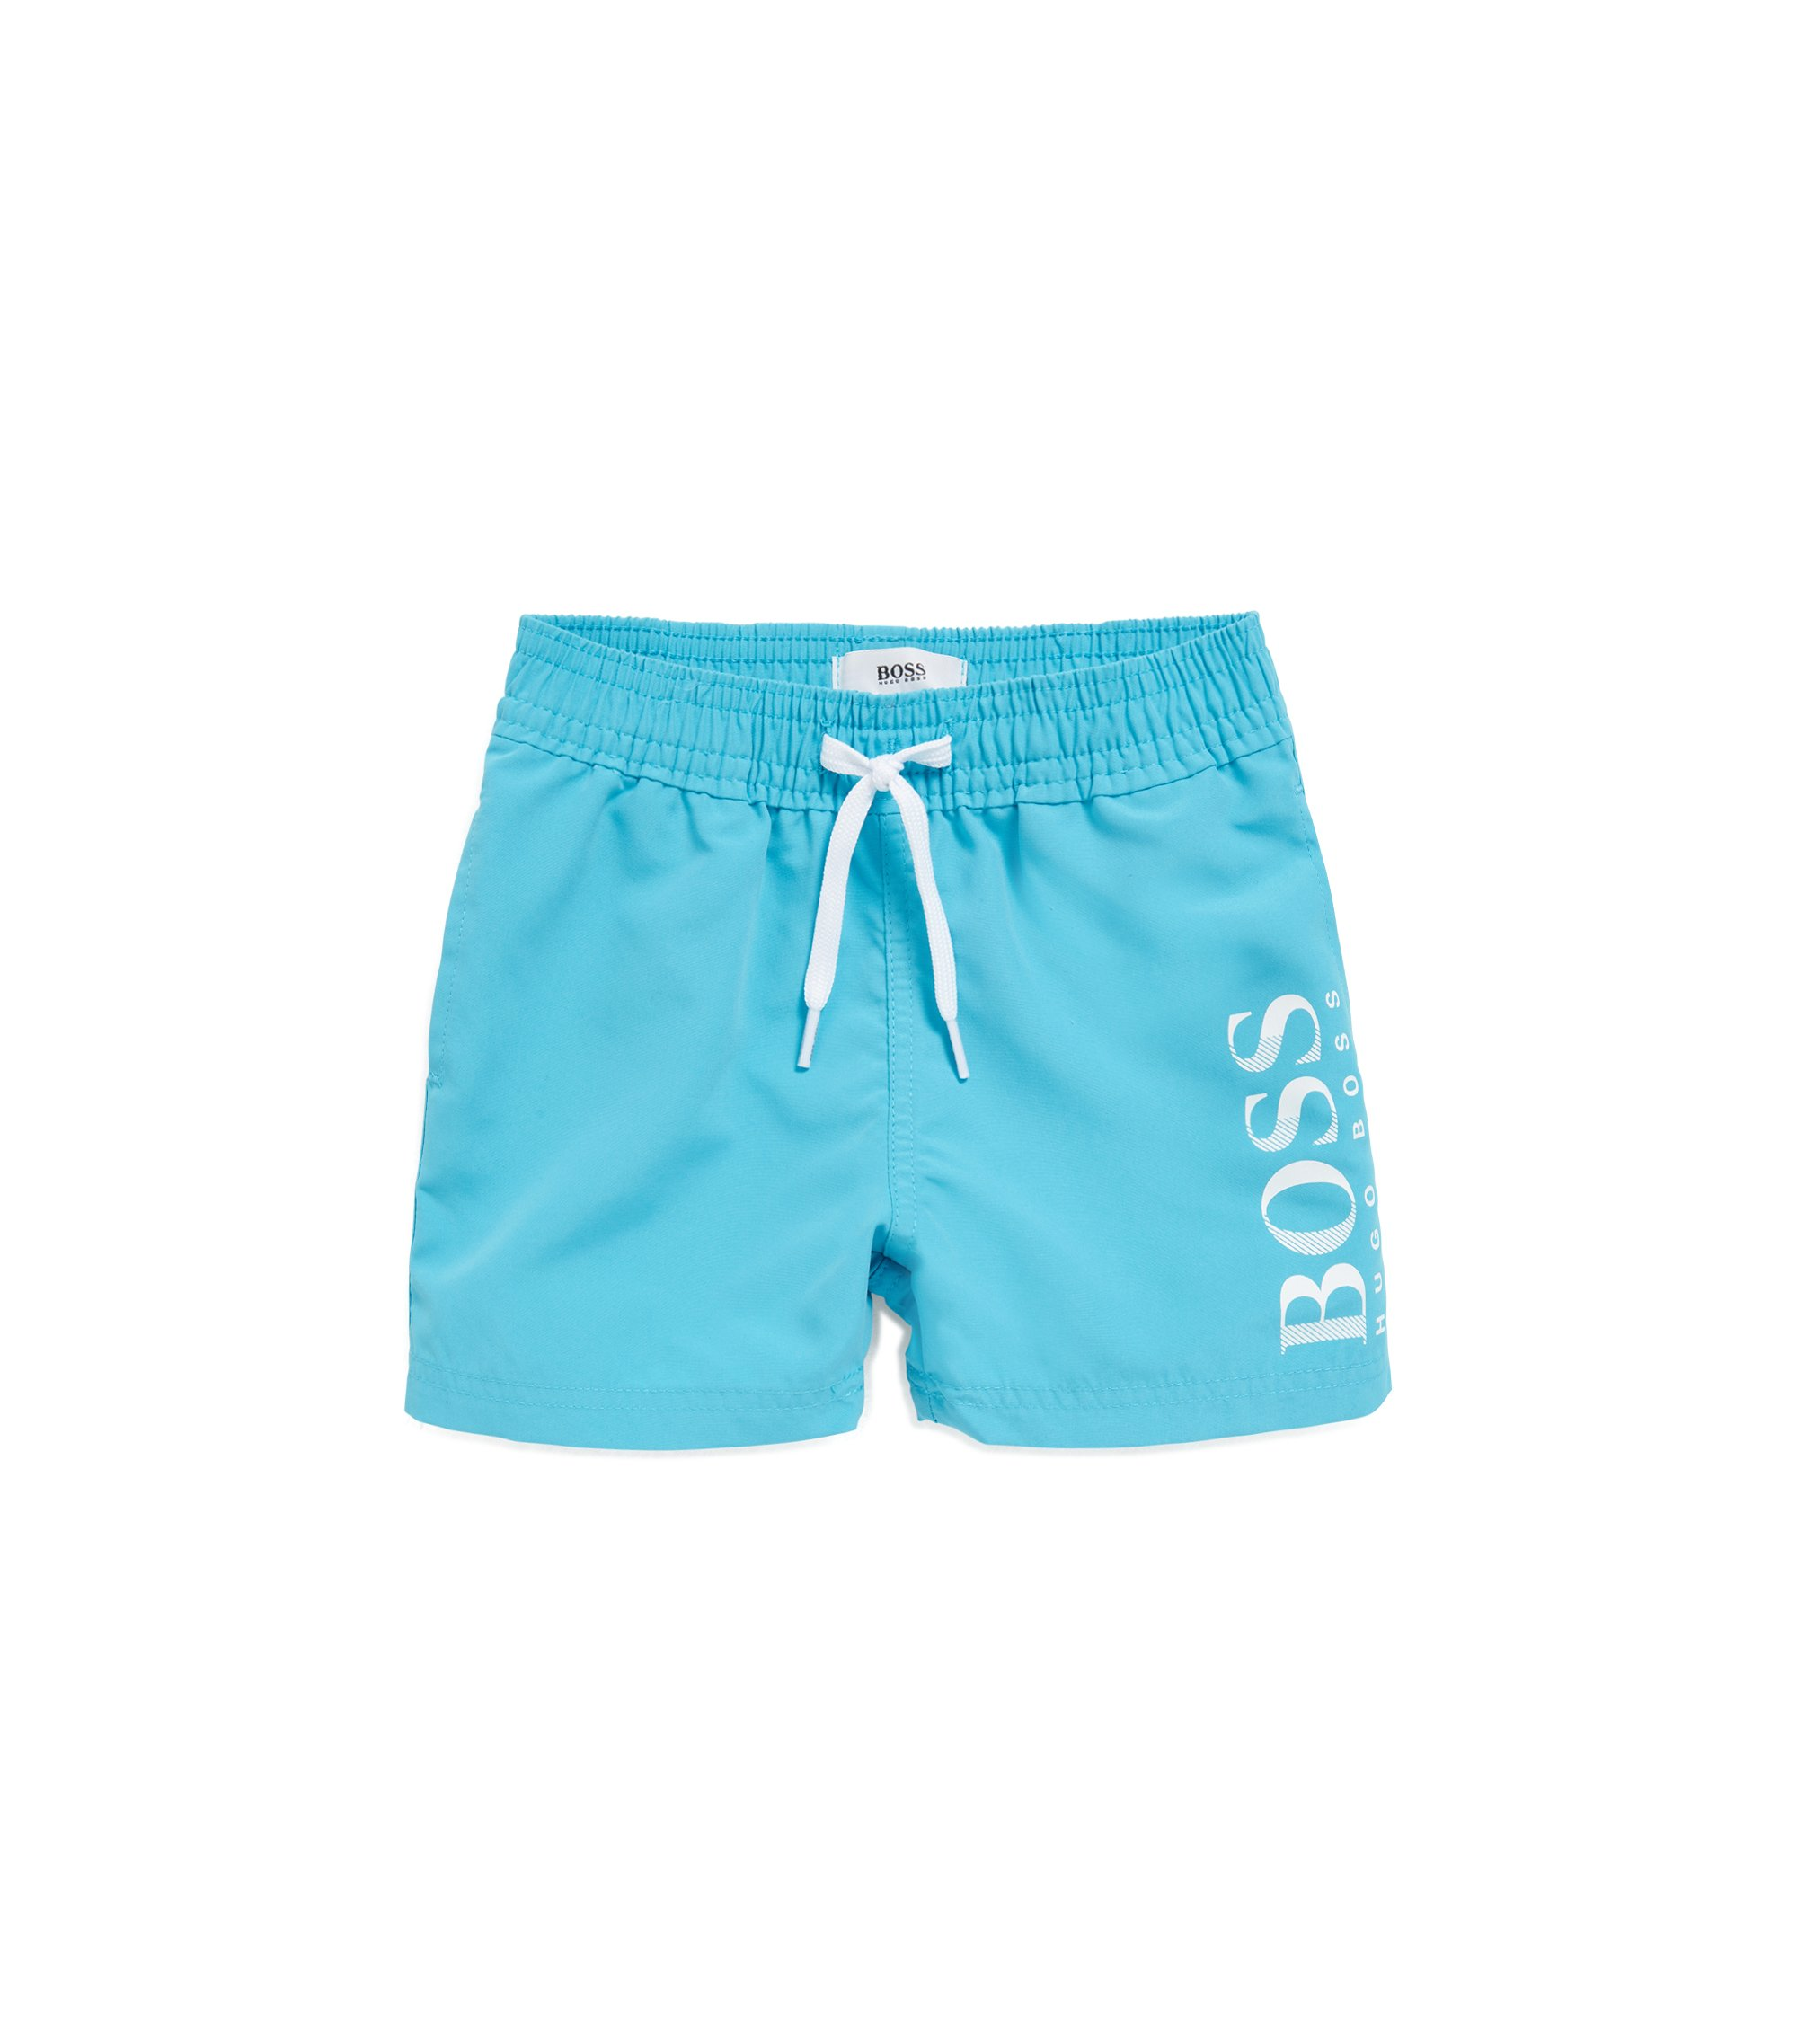 Kids' quick-dry swim shorts with logo print, Light Blue